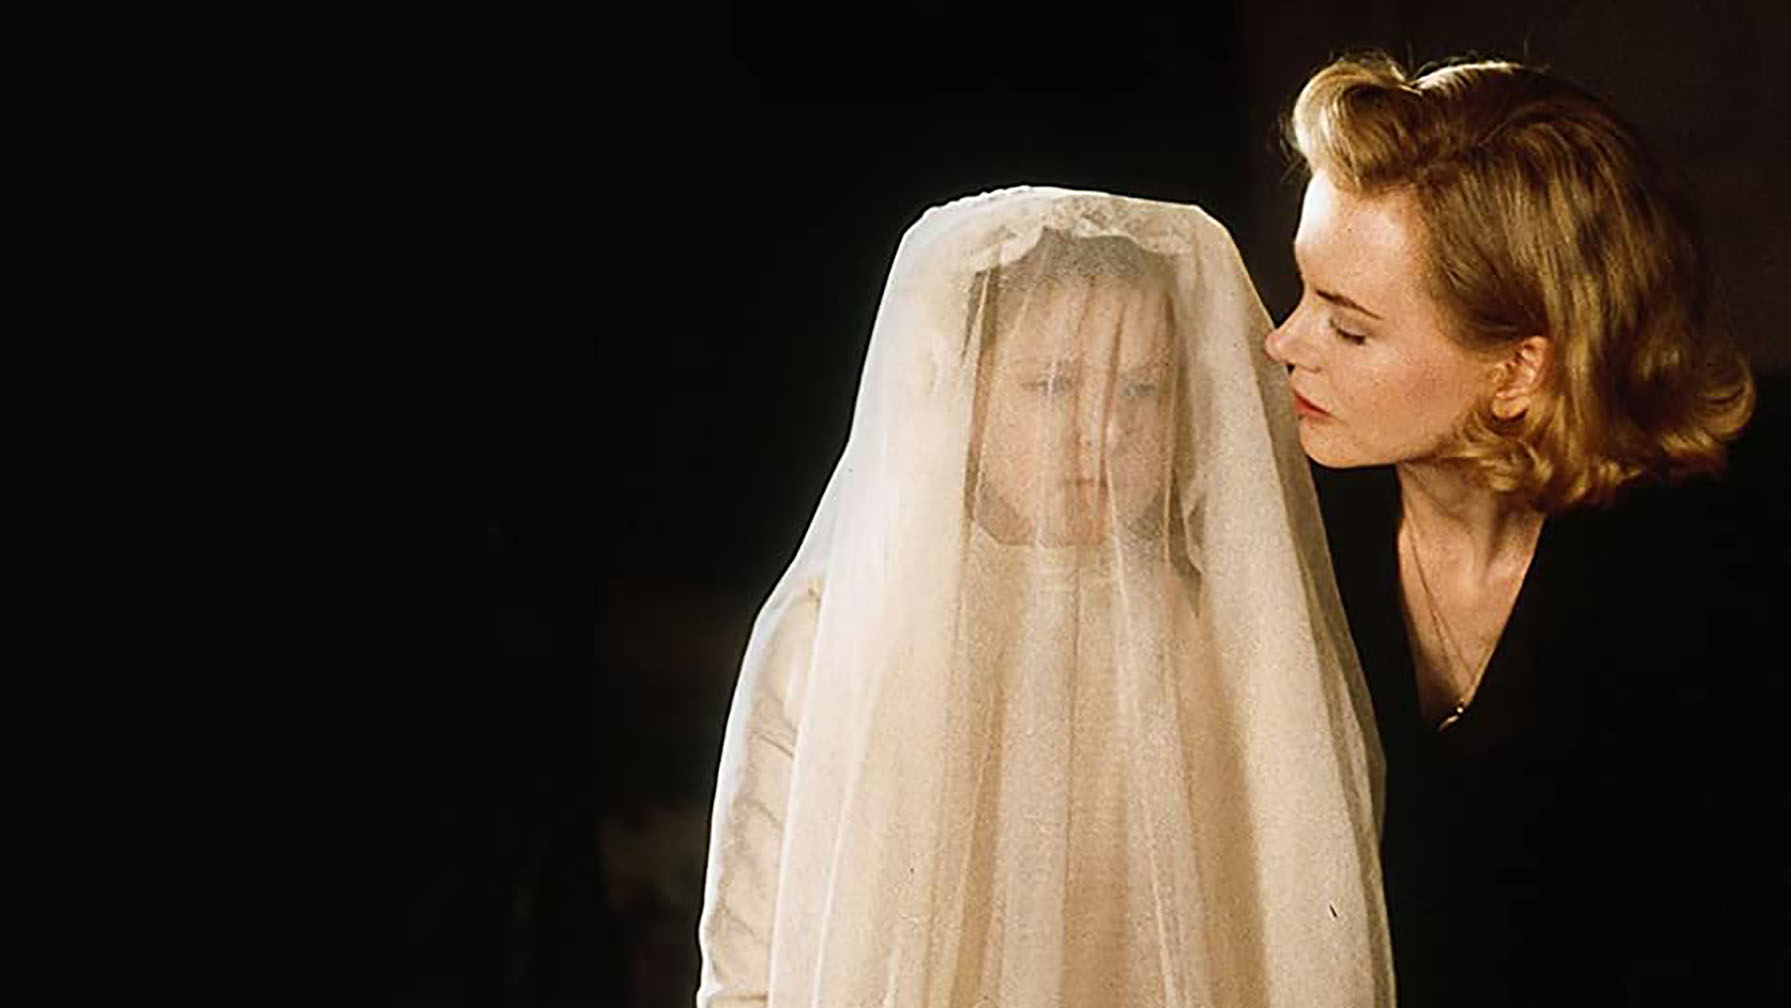 A little white girl in a white veil looking concerned next to her mother, a young white woman with a sleek 1940s blond hairstyle